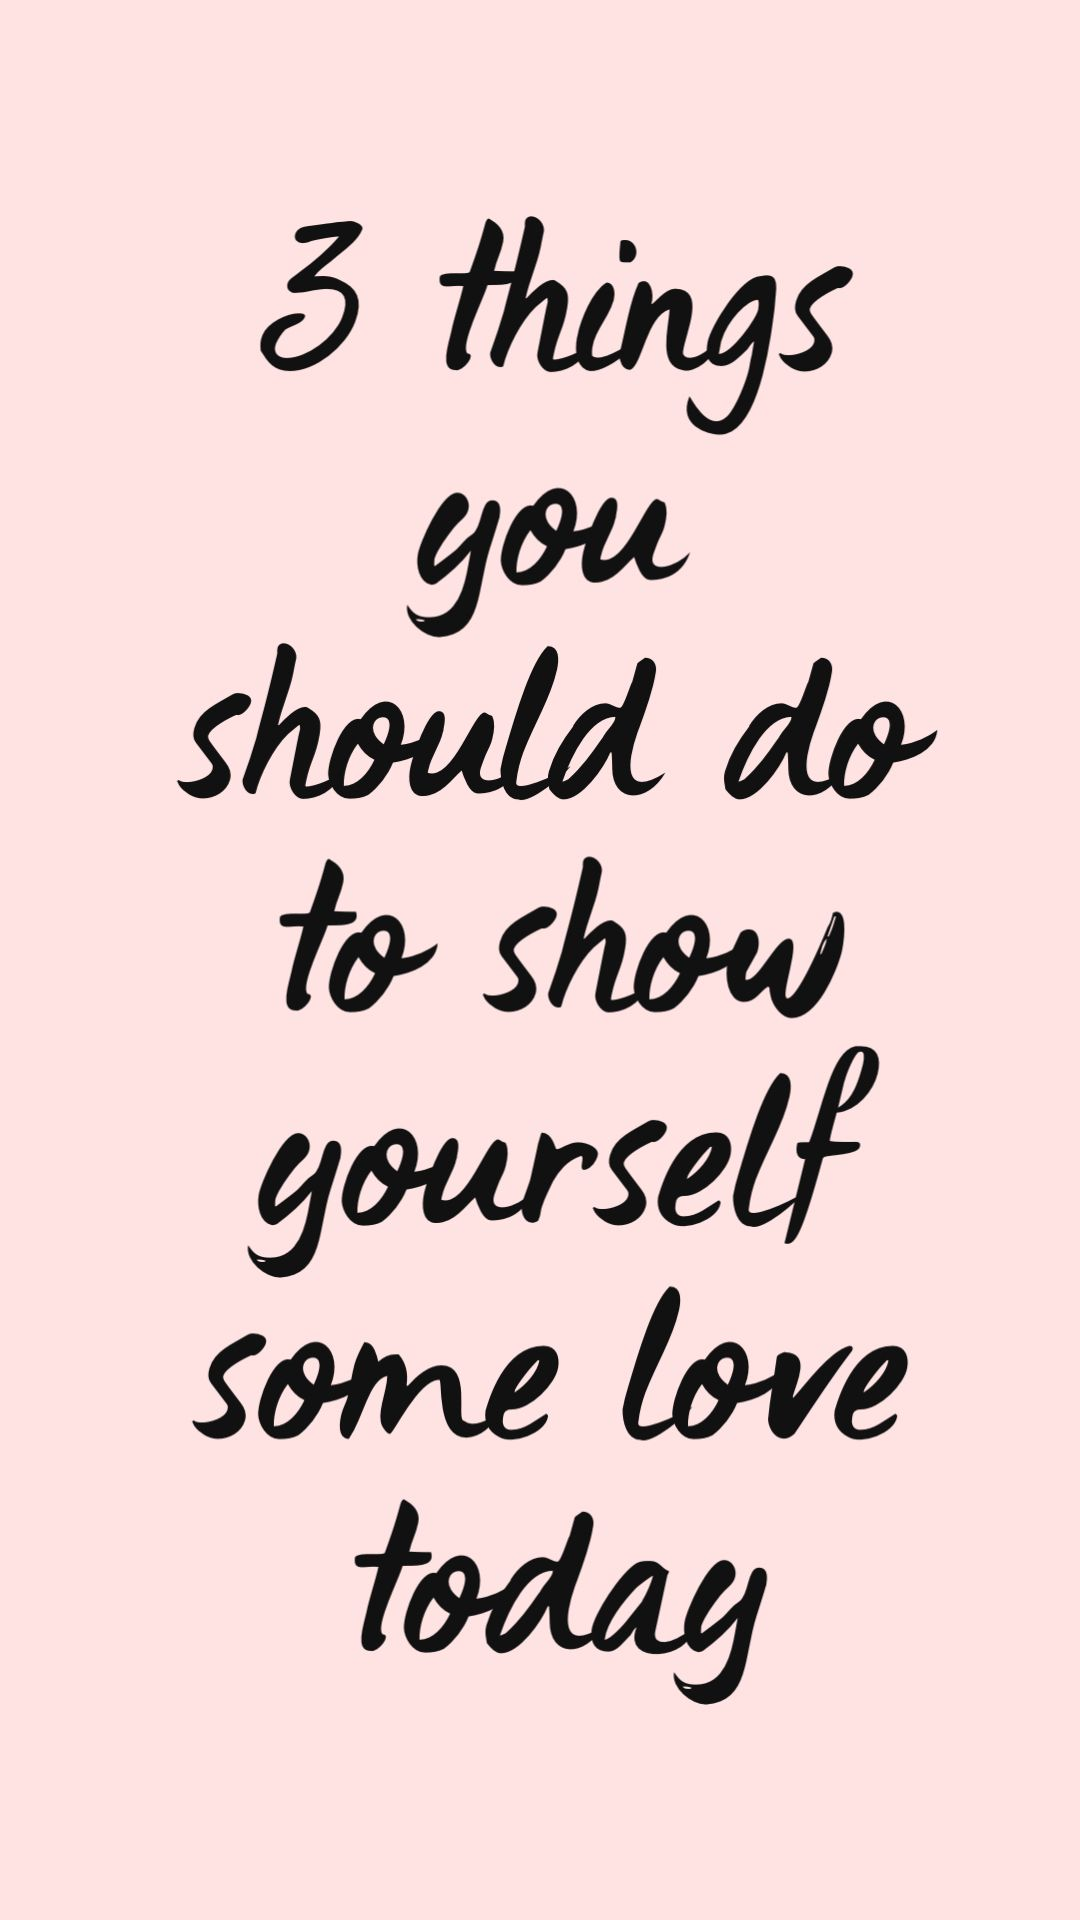 3 things you should do to show yourself some love today